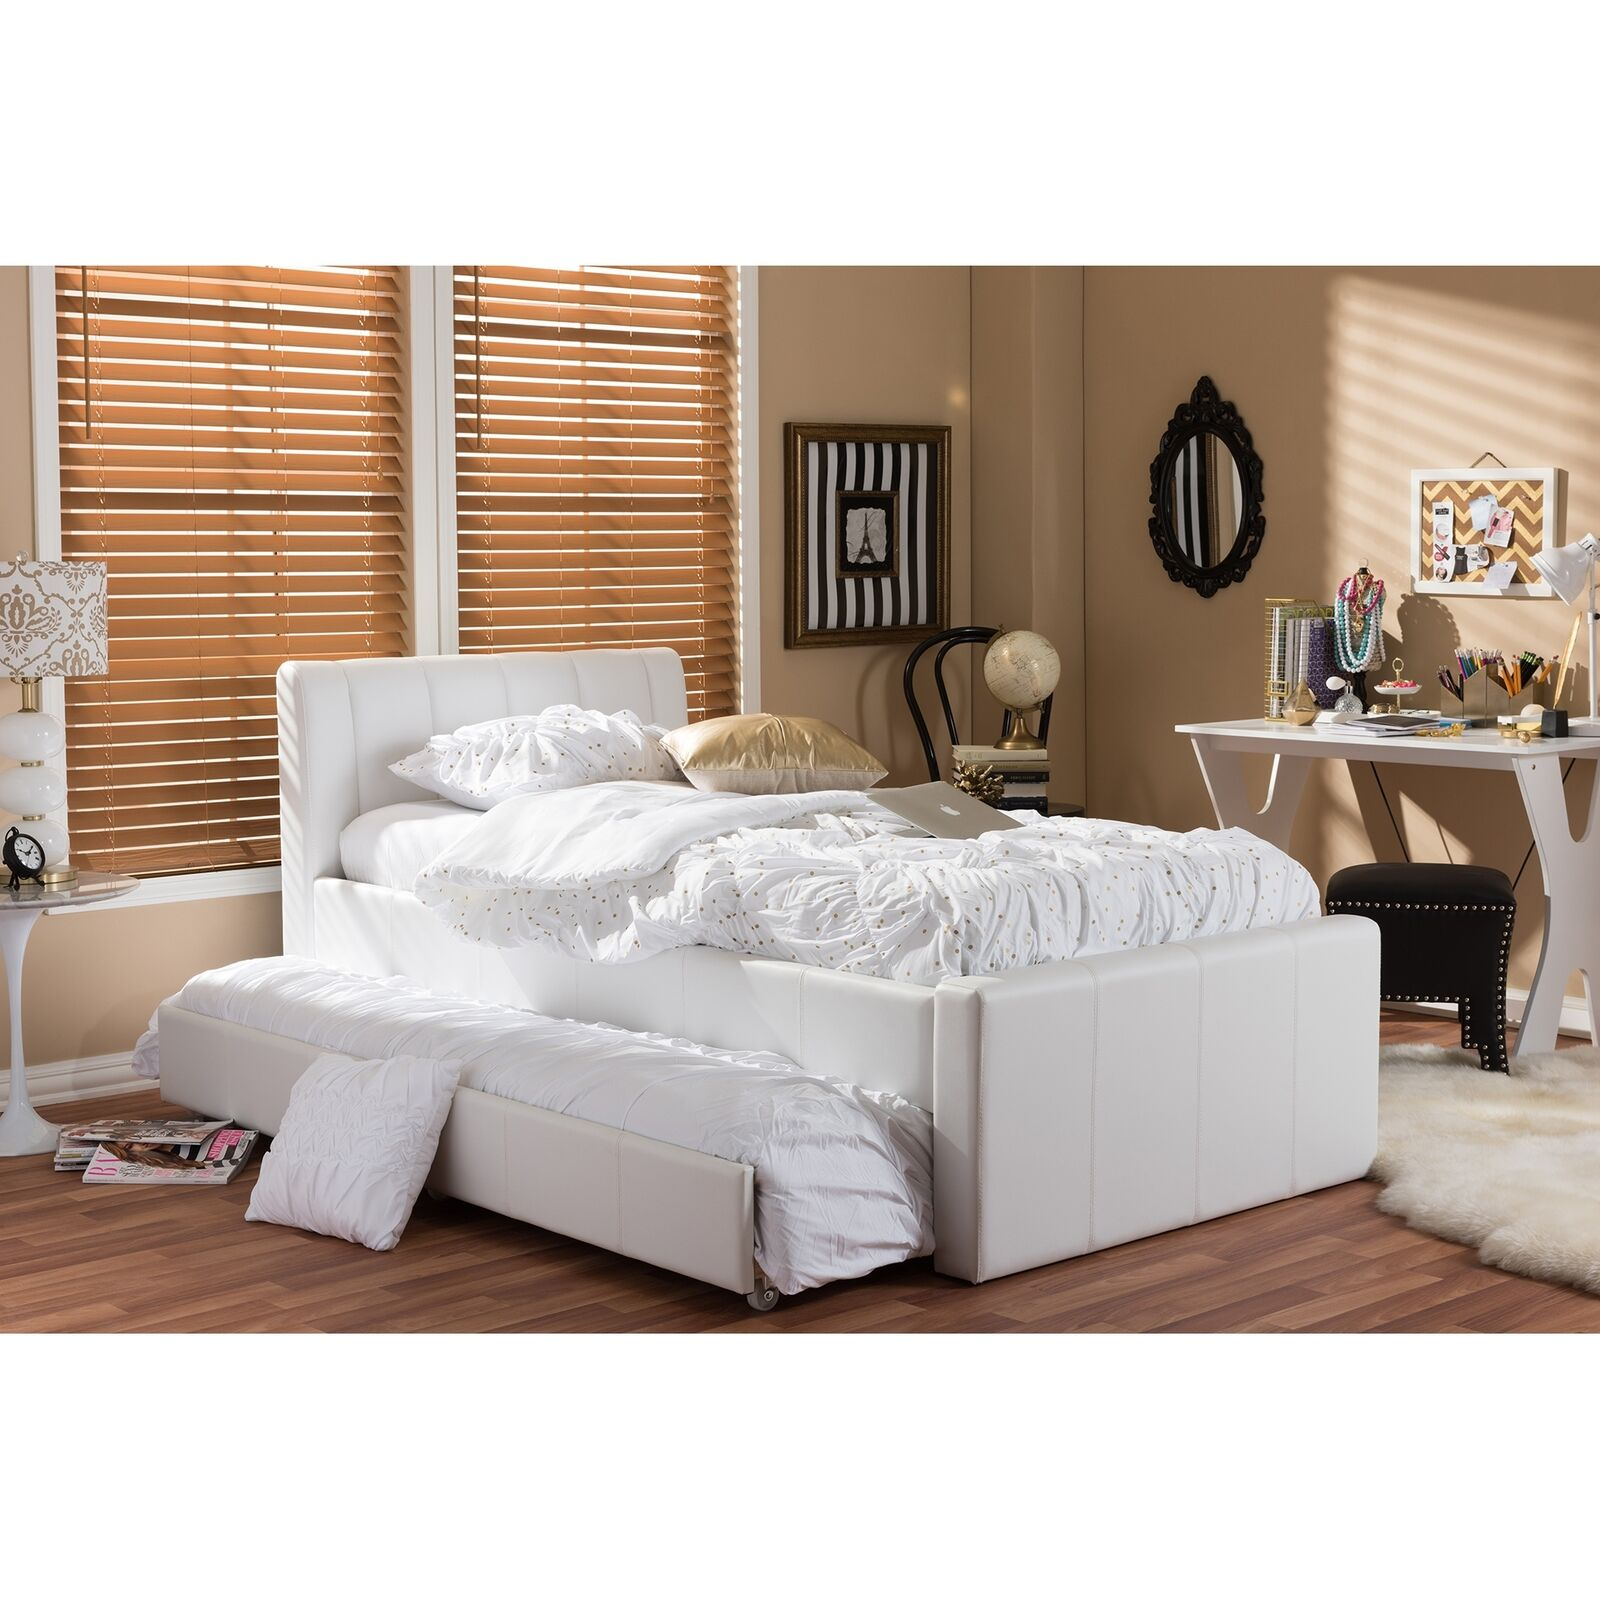 Twin Daybed With Trundle Bed Black Faux Leather Furniture Lounge Kids Guest Room For Sale Online Ebay